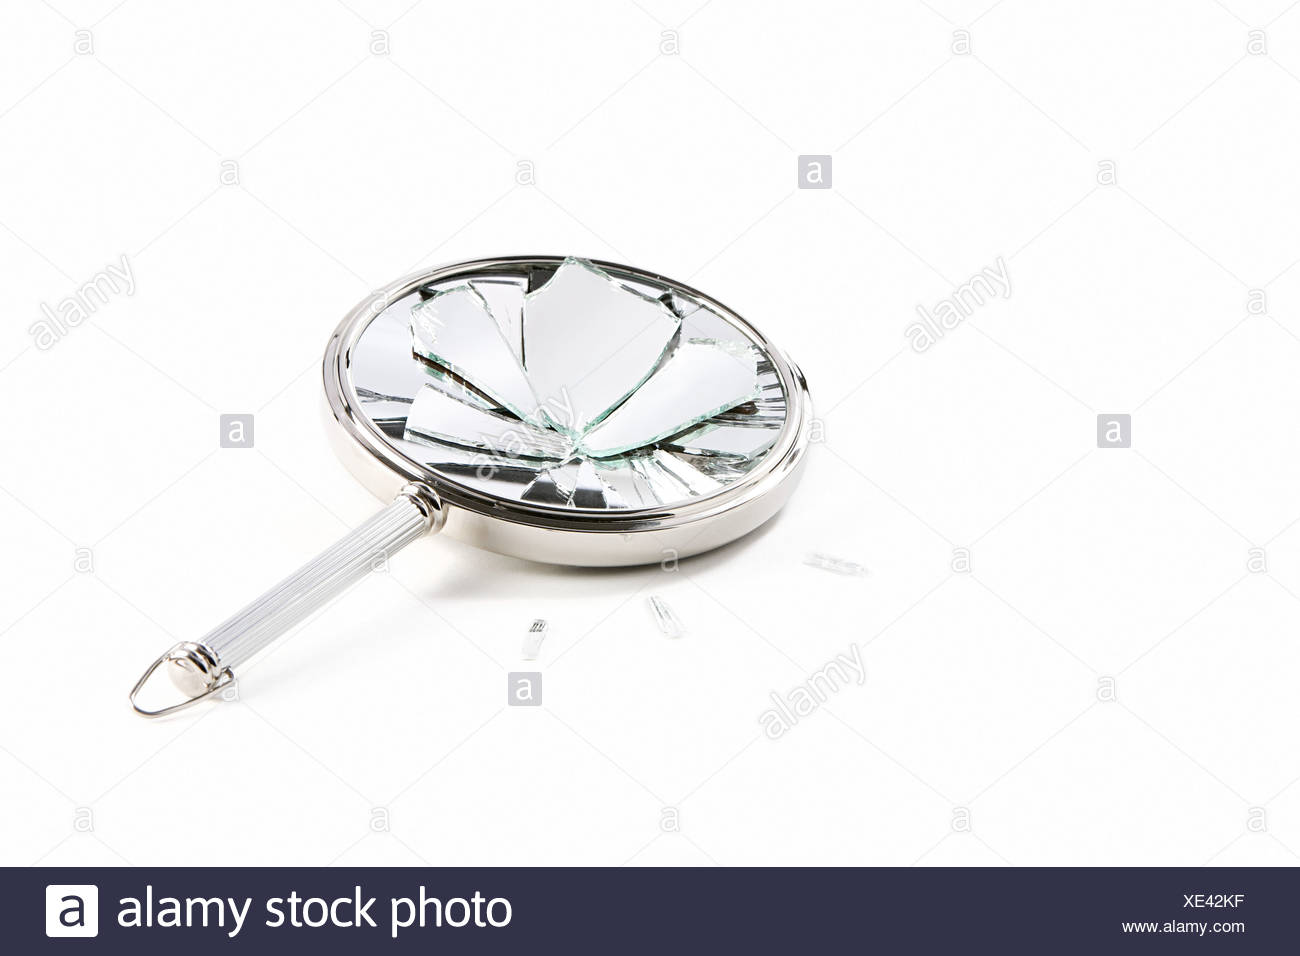 Shattered hand mirror - Stock Image